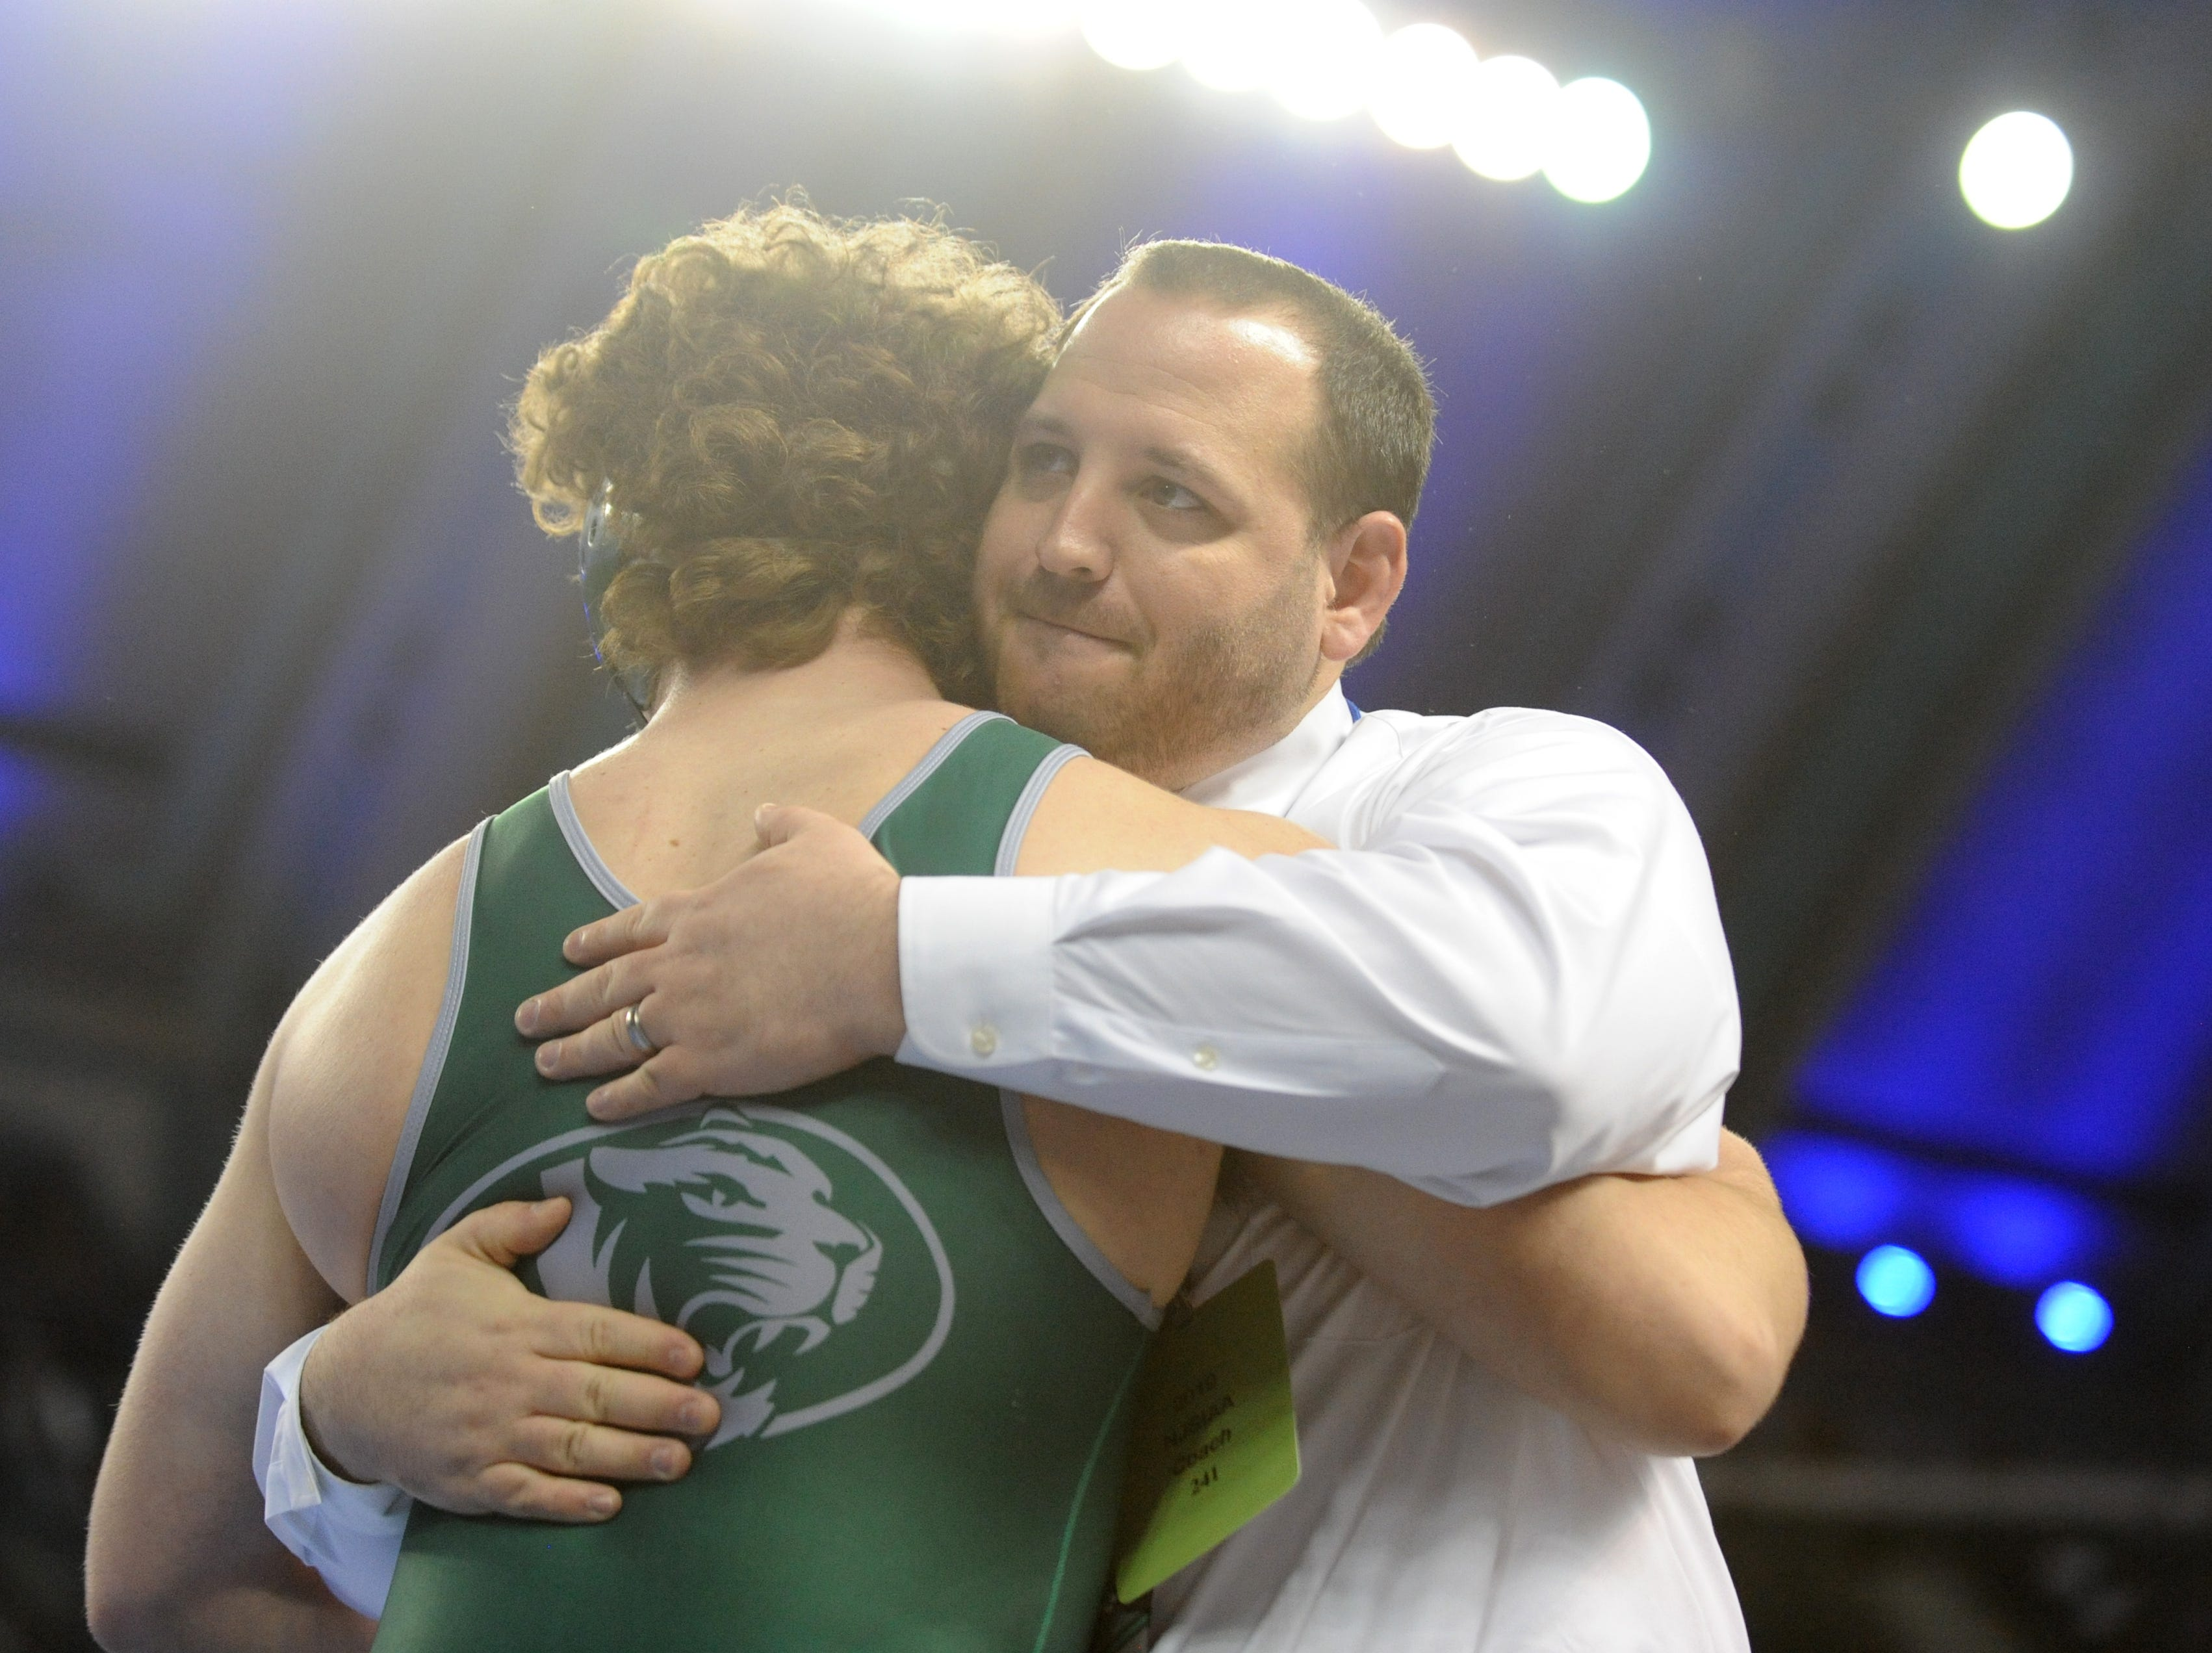 South Plainfield's Luke Niemeyer hugs his coach after defeating Delbarton's Luke Chakonis in a 195-pound 3rd place bout during the NJSIAA Individual Wrestling Championships at Boardwalk Hall in Atlantic City, Saturday, March 2, 2019.